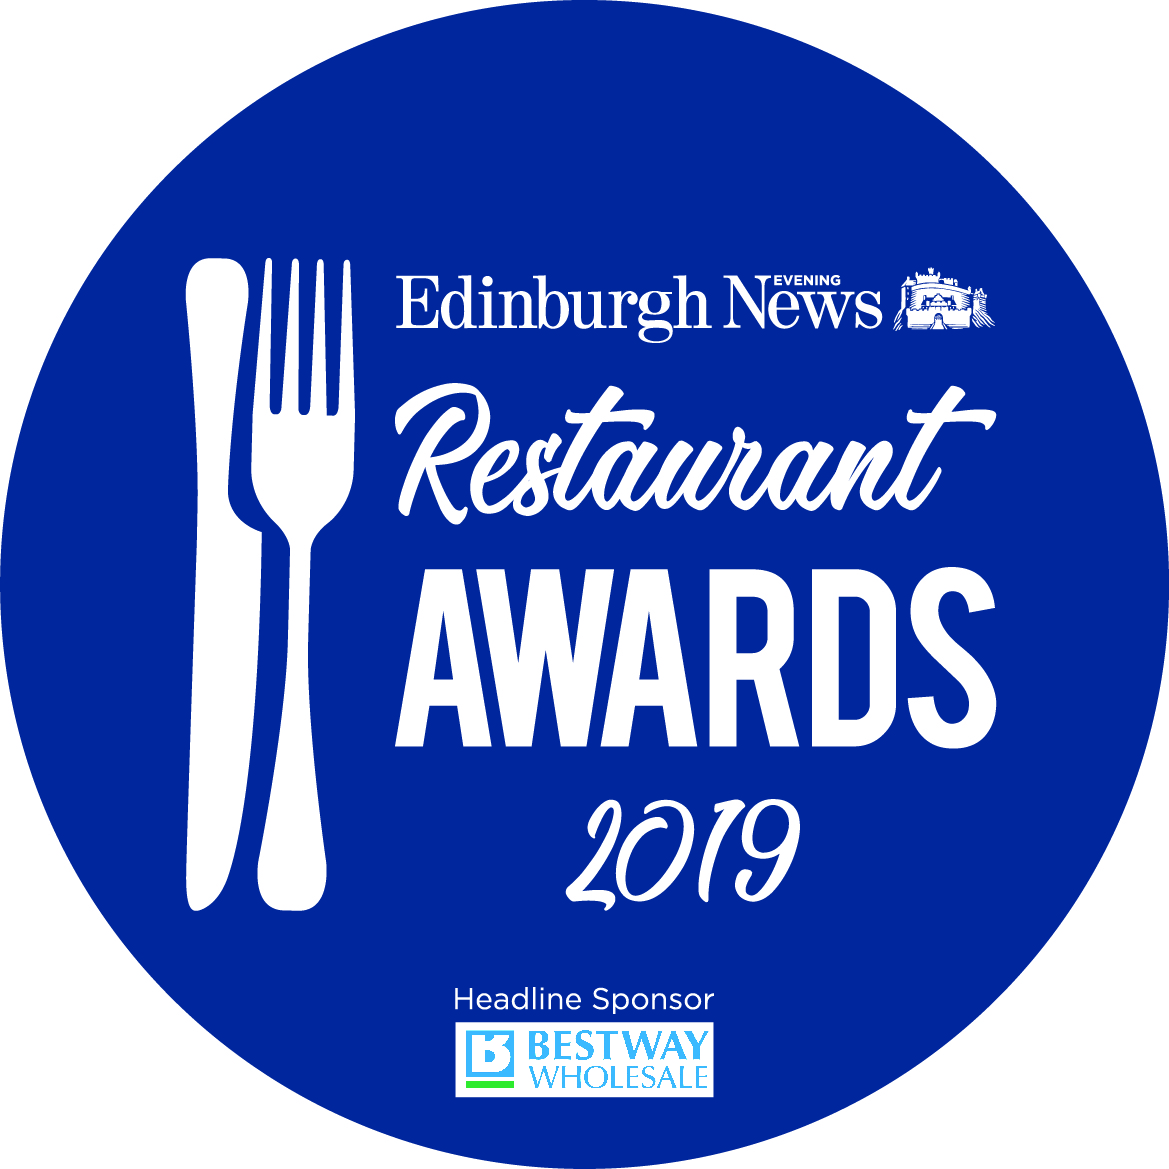 Edinburgh Restaurant Awards logo w sponsor.jpg